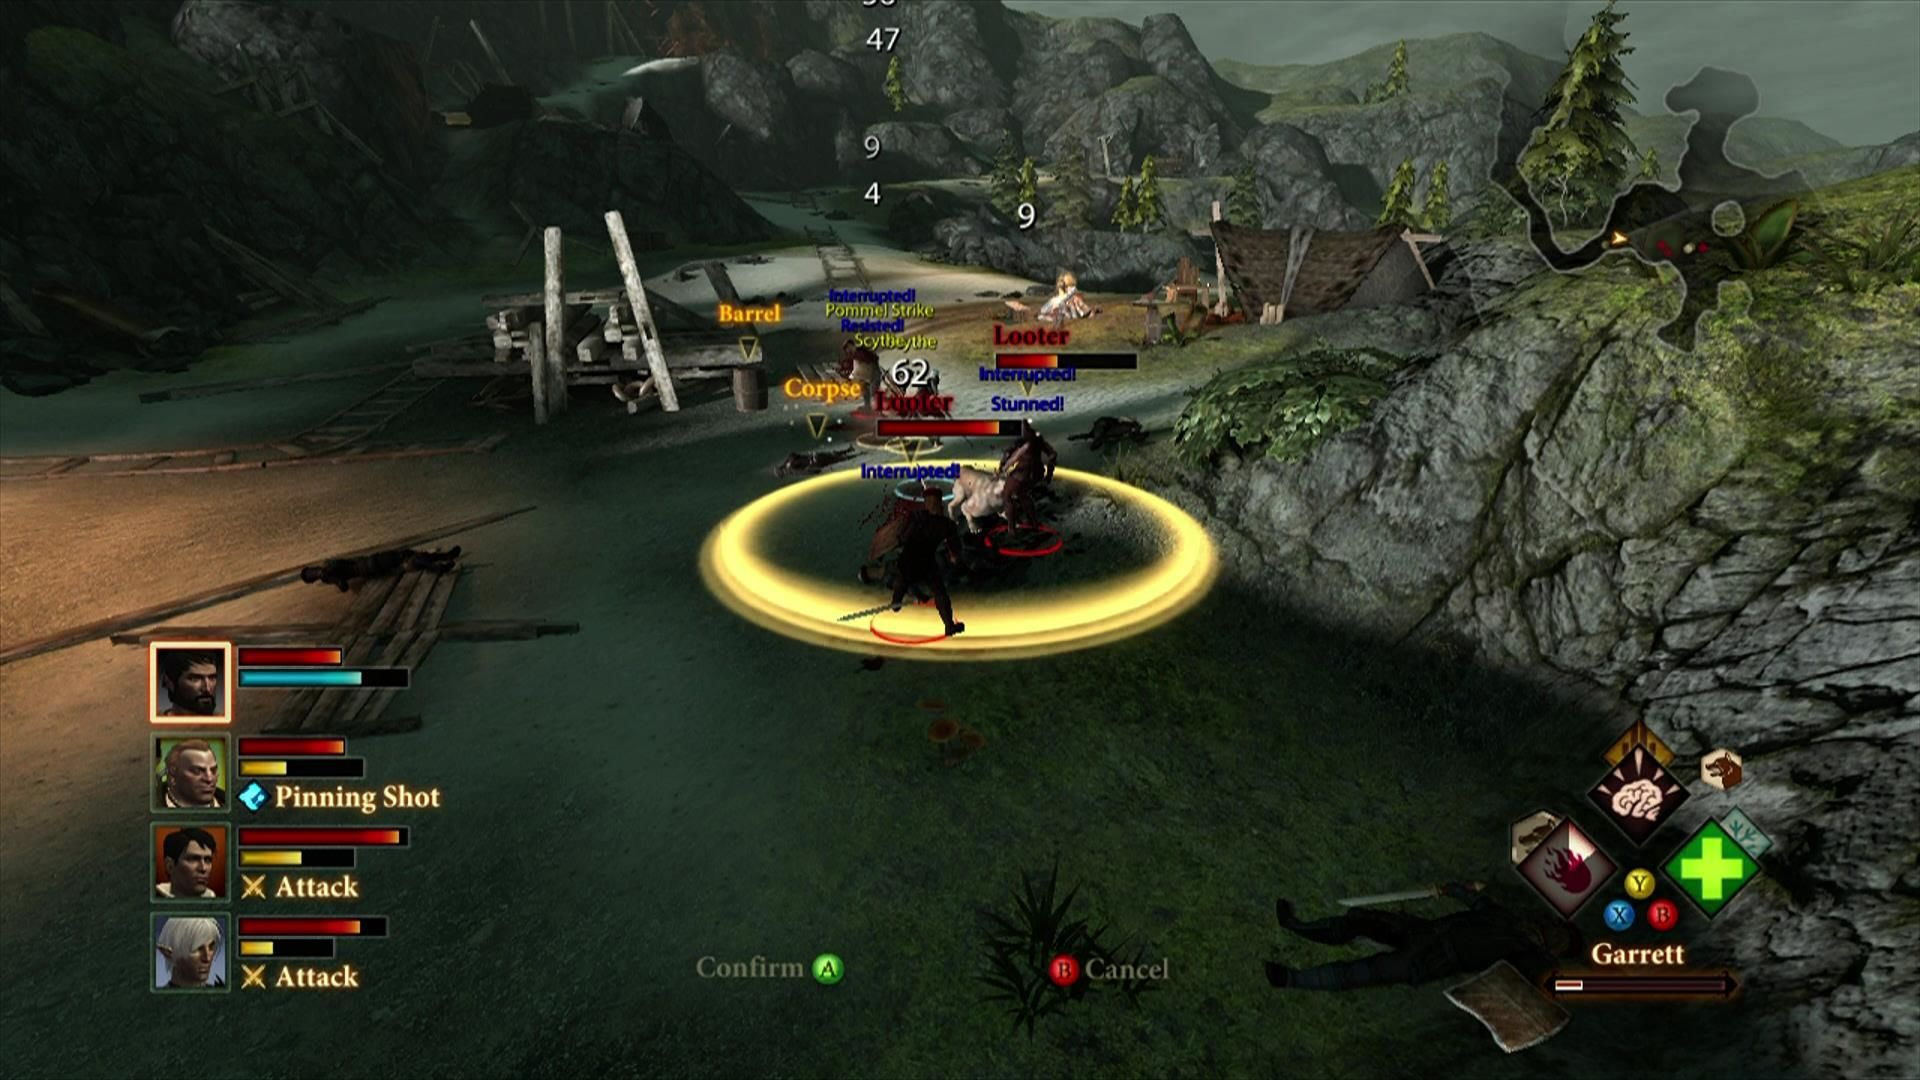 Dragon Age II Xbox 360 Your party in combat ... this can get somewhat confusing sometimes